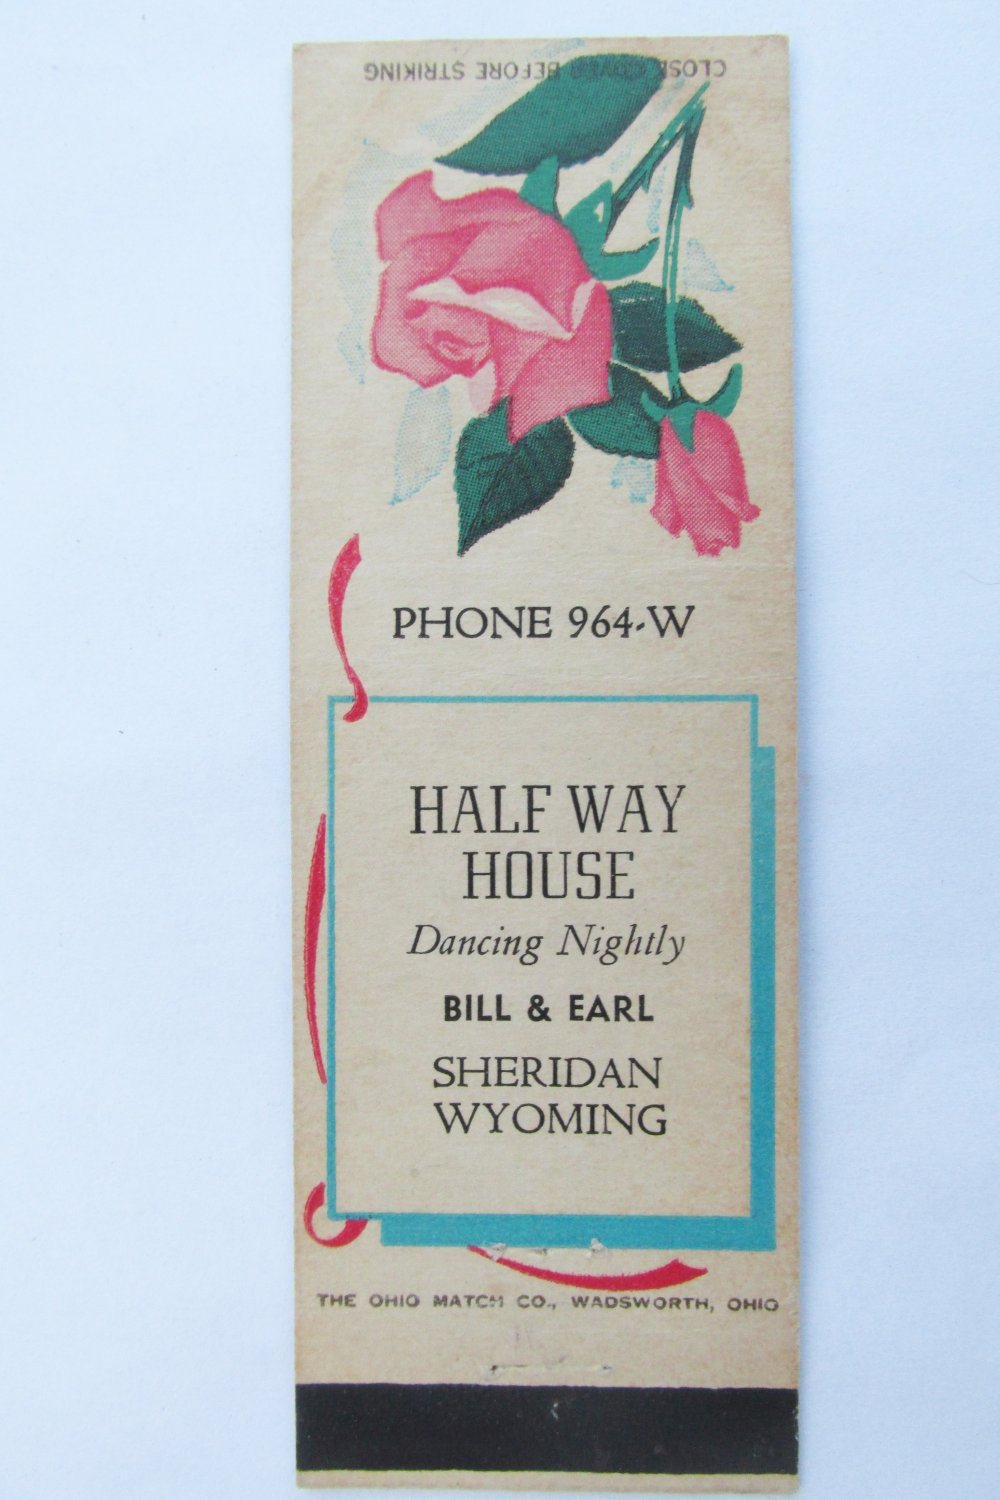 Half Way House - Sheridan, Wyoming Restaurant 20 FS Matchbook Cover Matchcover